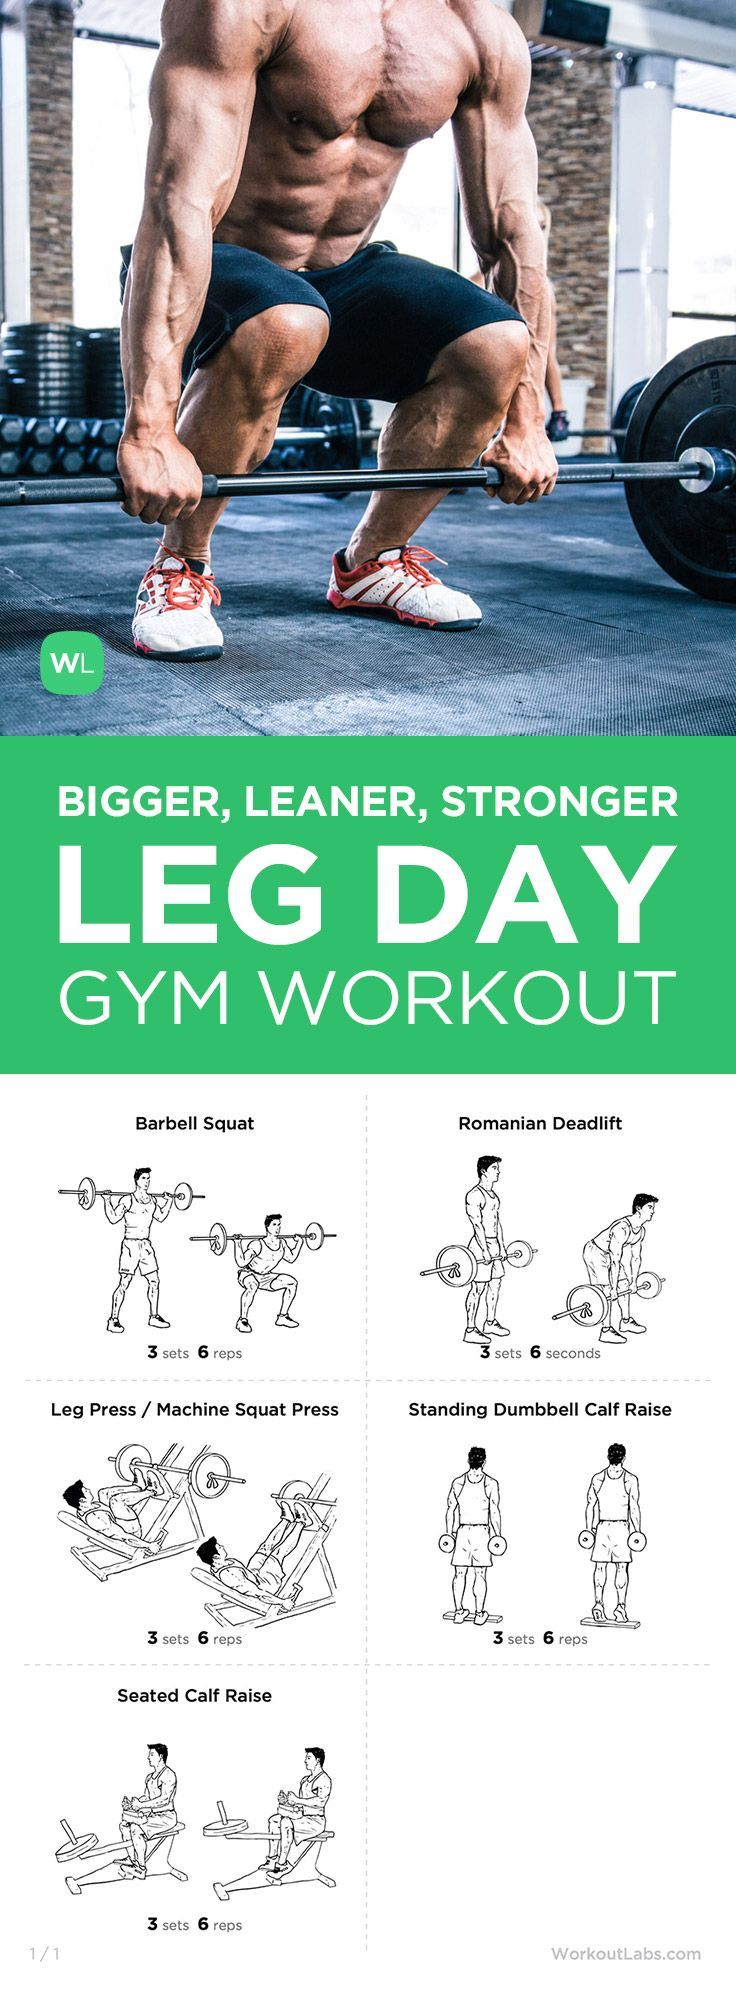 Free PDF: Mike Matthews Bigger Leaner Stronger Leg Day Workout for Men